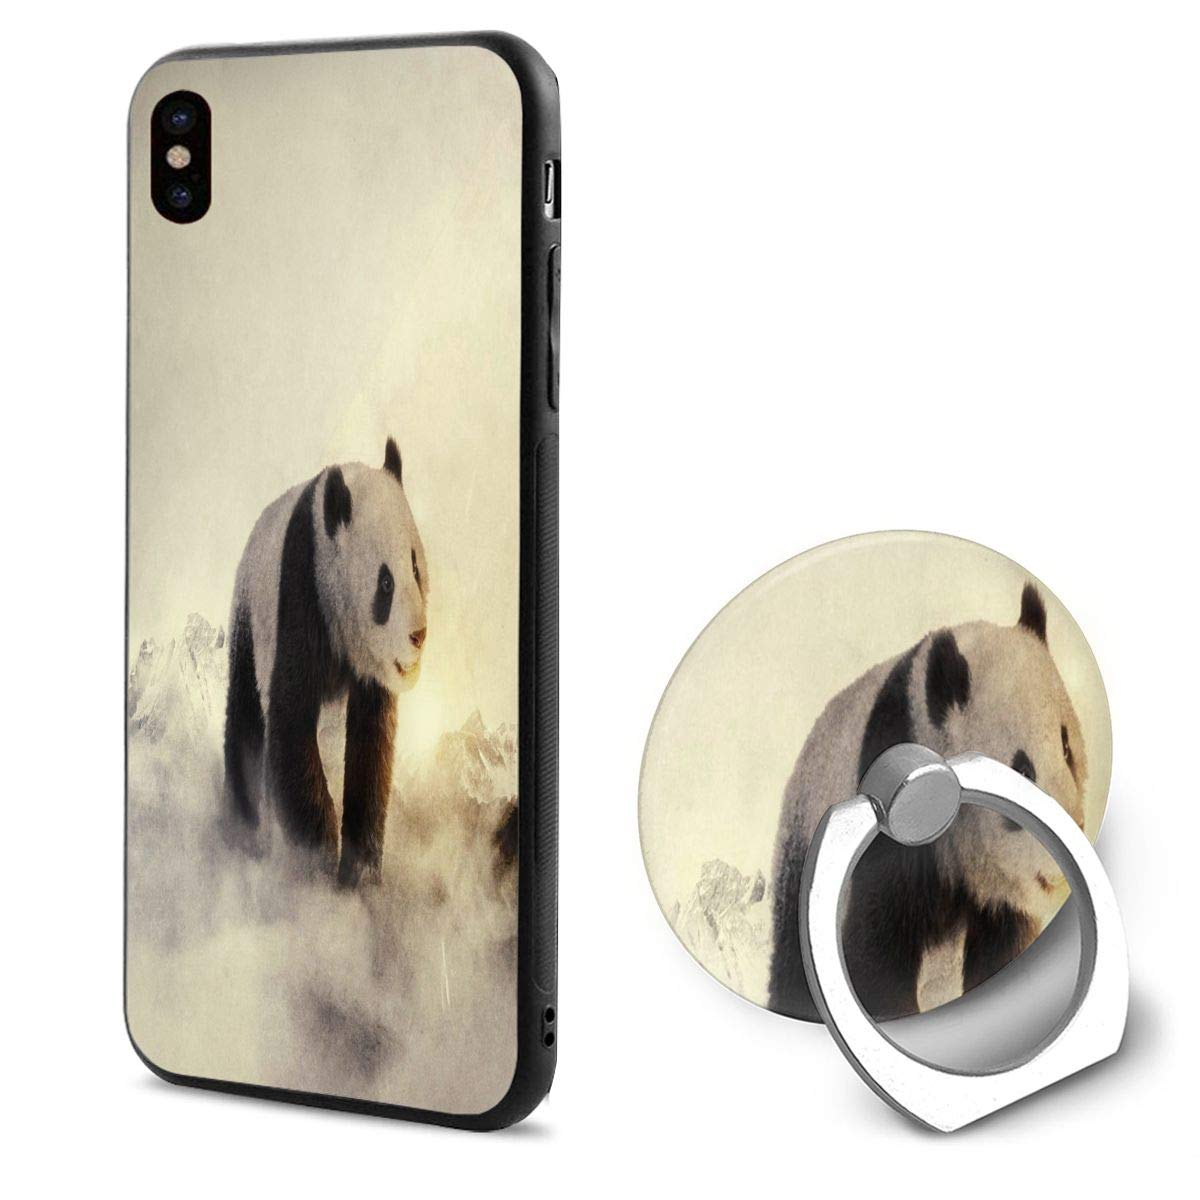 Amazon.com: Phone X Case Cute Panda Wallpapers Ring Cell ...